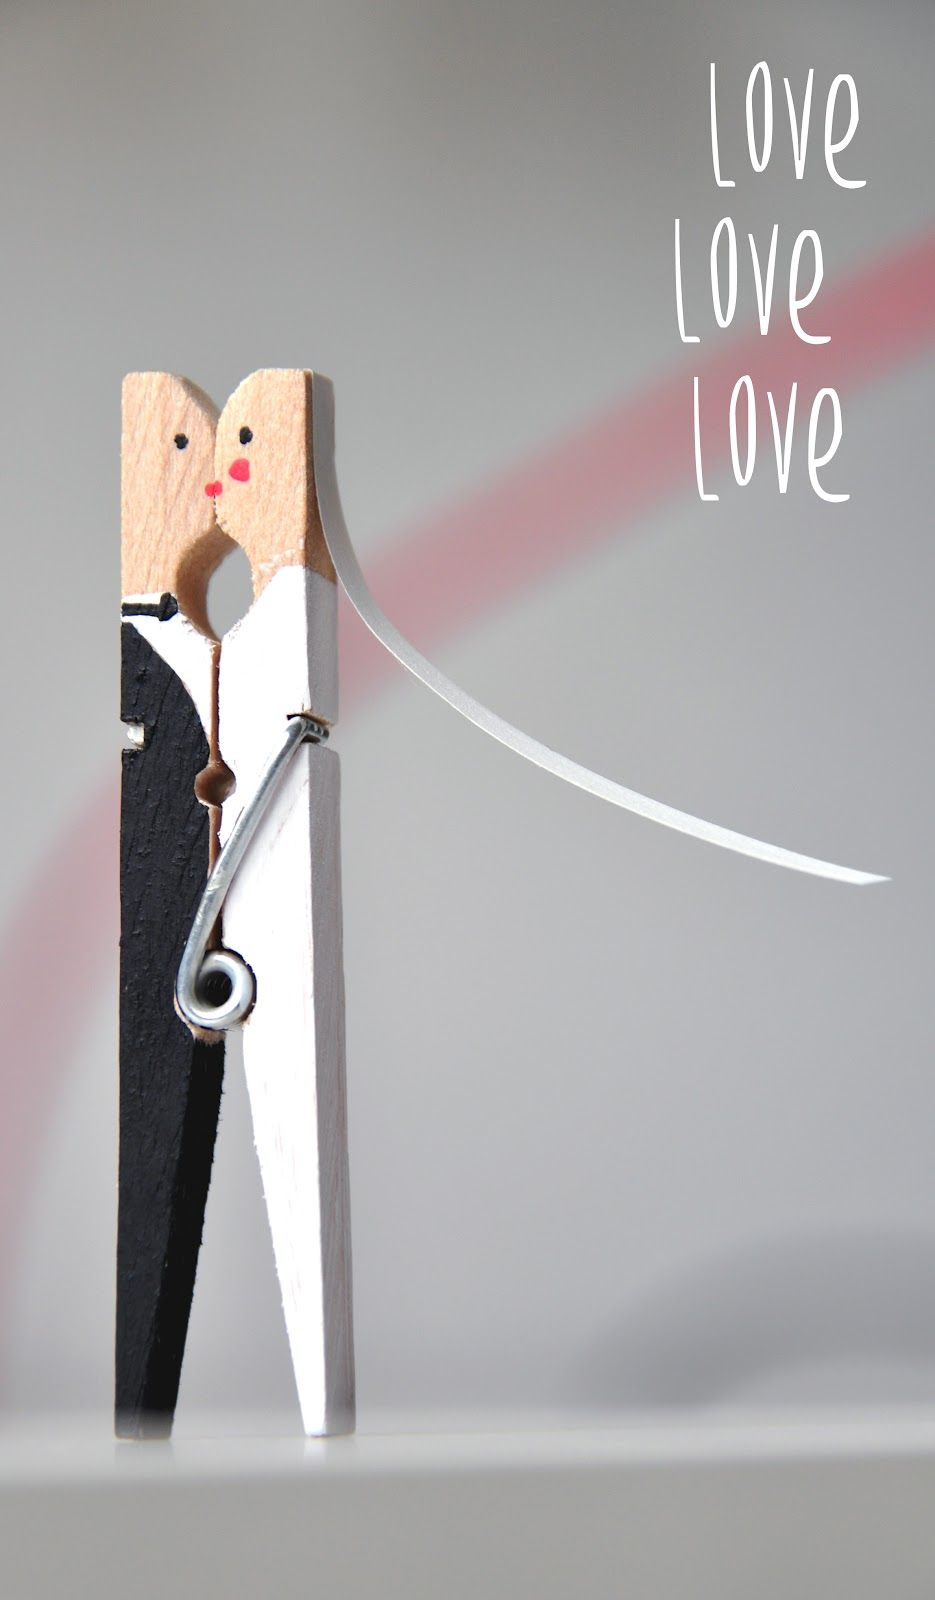 Card Making Ideas For Weddings Part - 31: Cute Clothes Pin Bride And Groom! You Can Make A Bunch To Hold Escort Cards